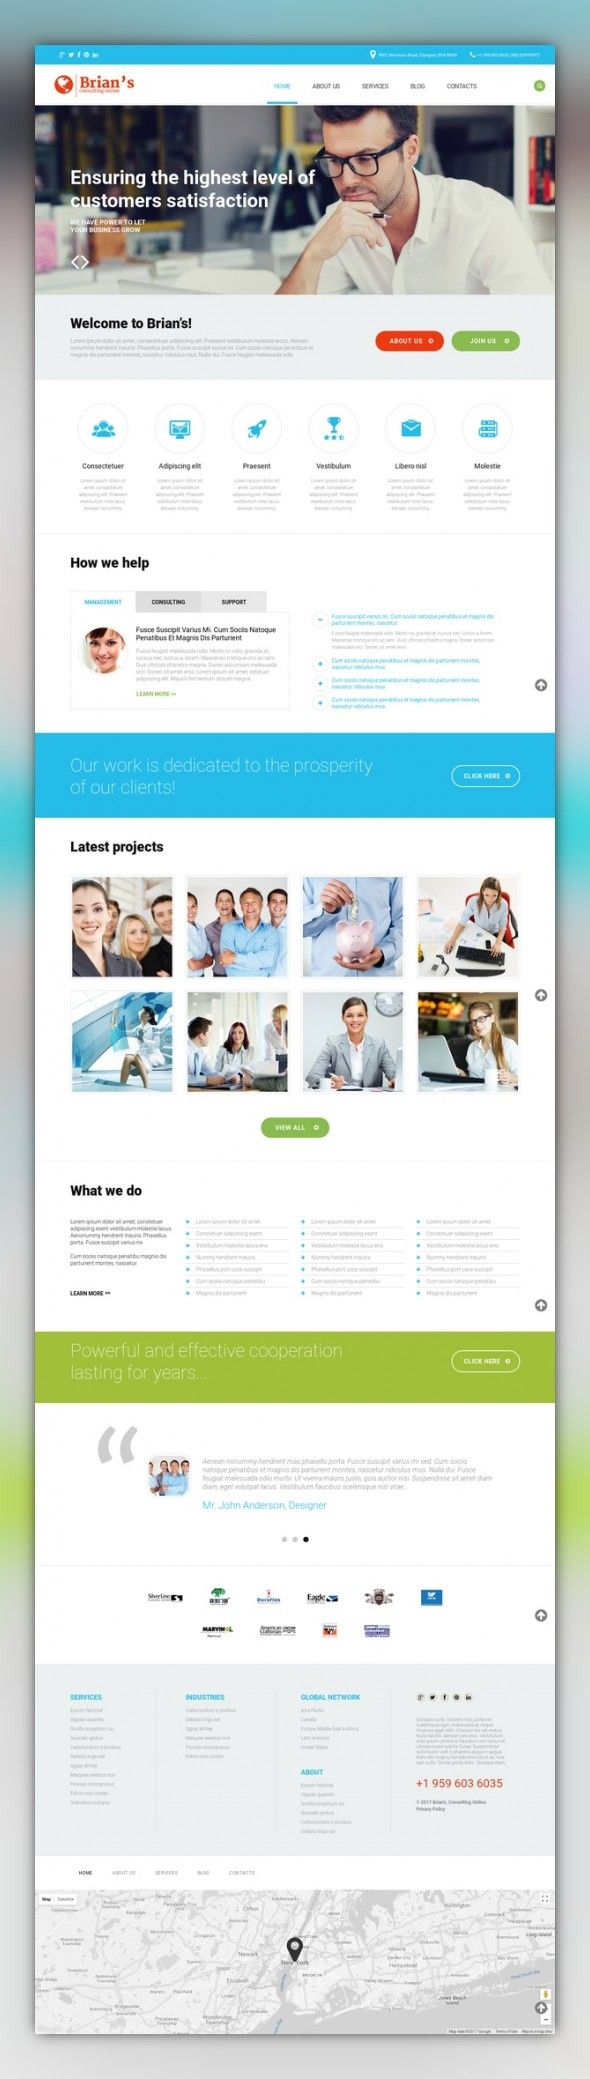 Consulting Agency WordPress Theme CMS & Blog Templates, WordPress Themes, Business & Services, Business Services, Consulting Templates